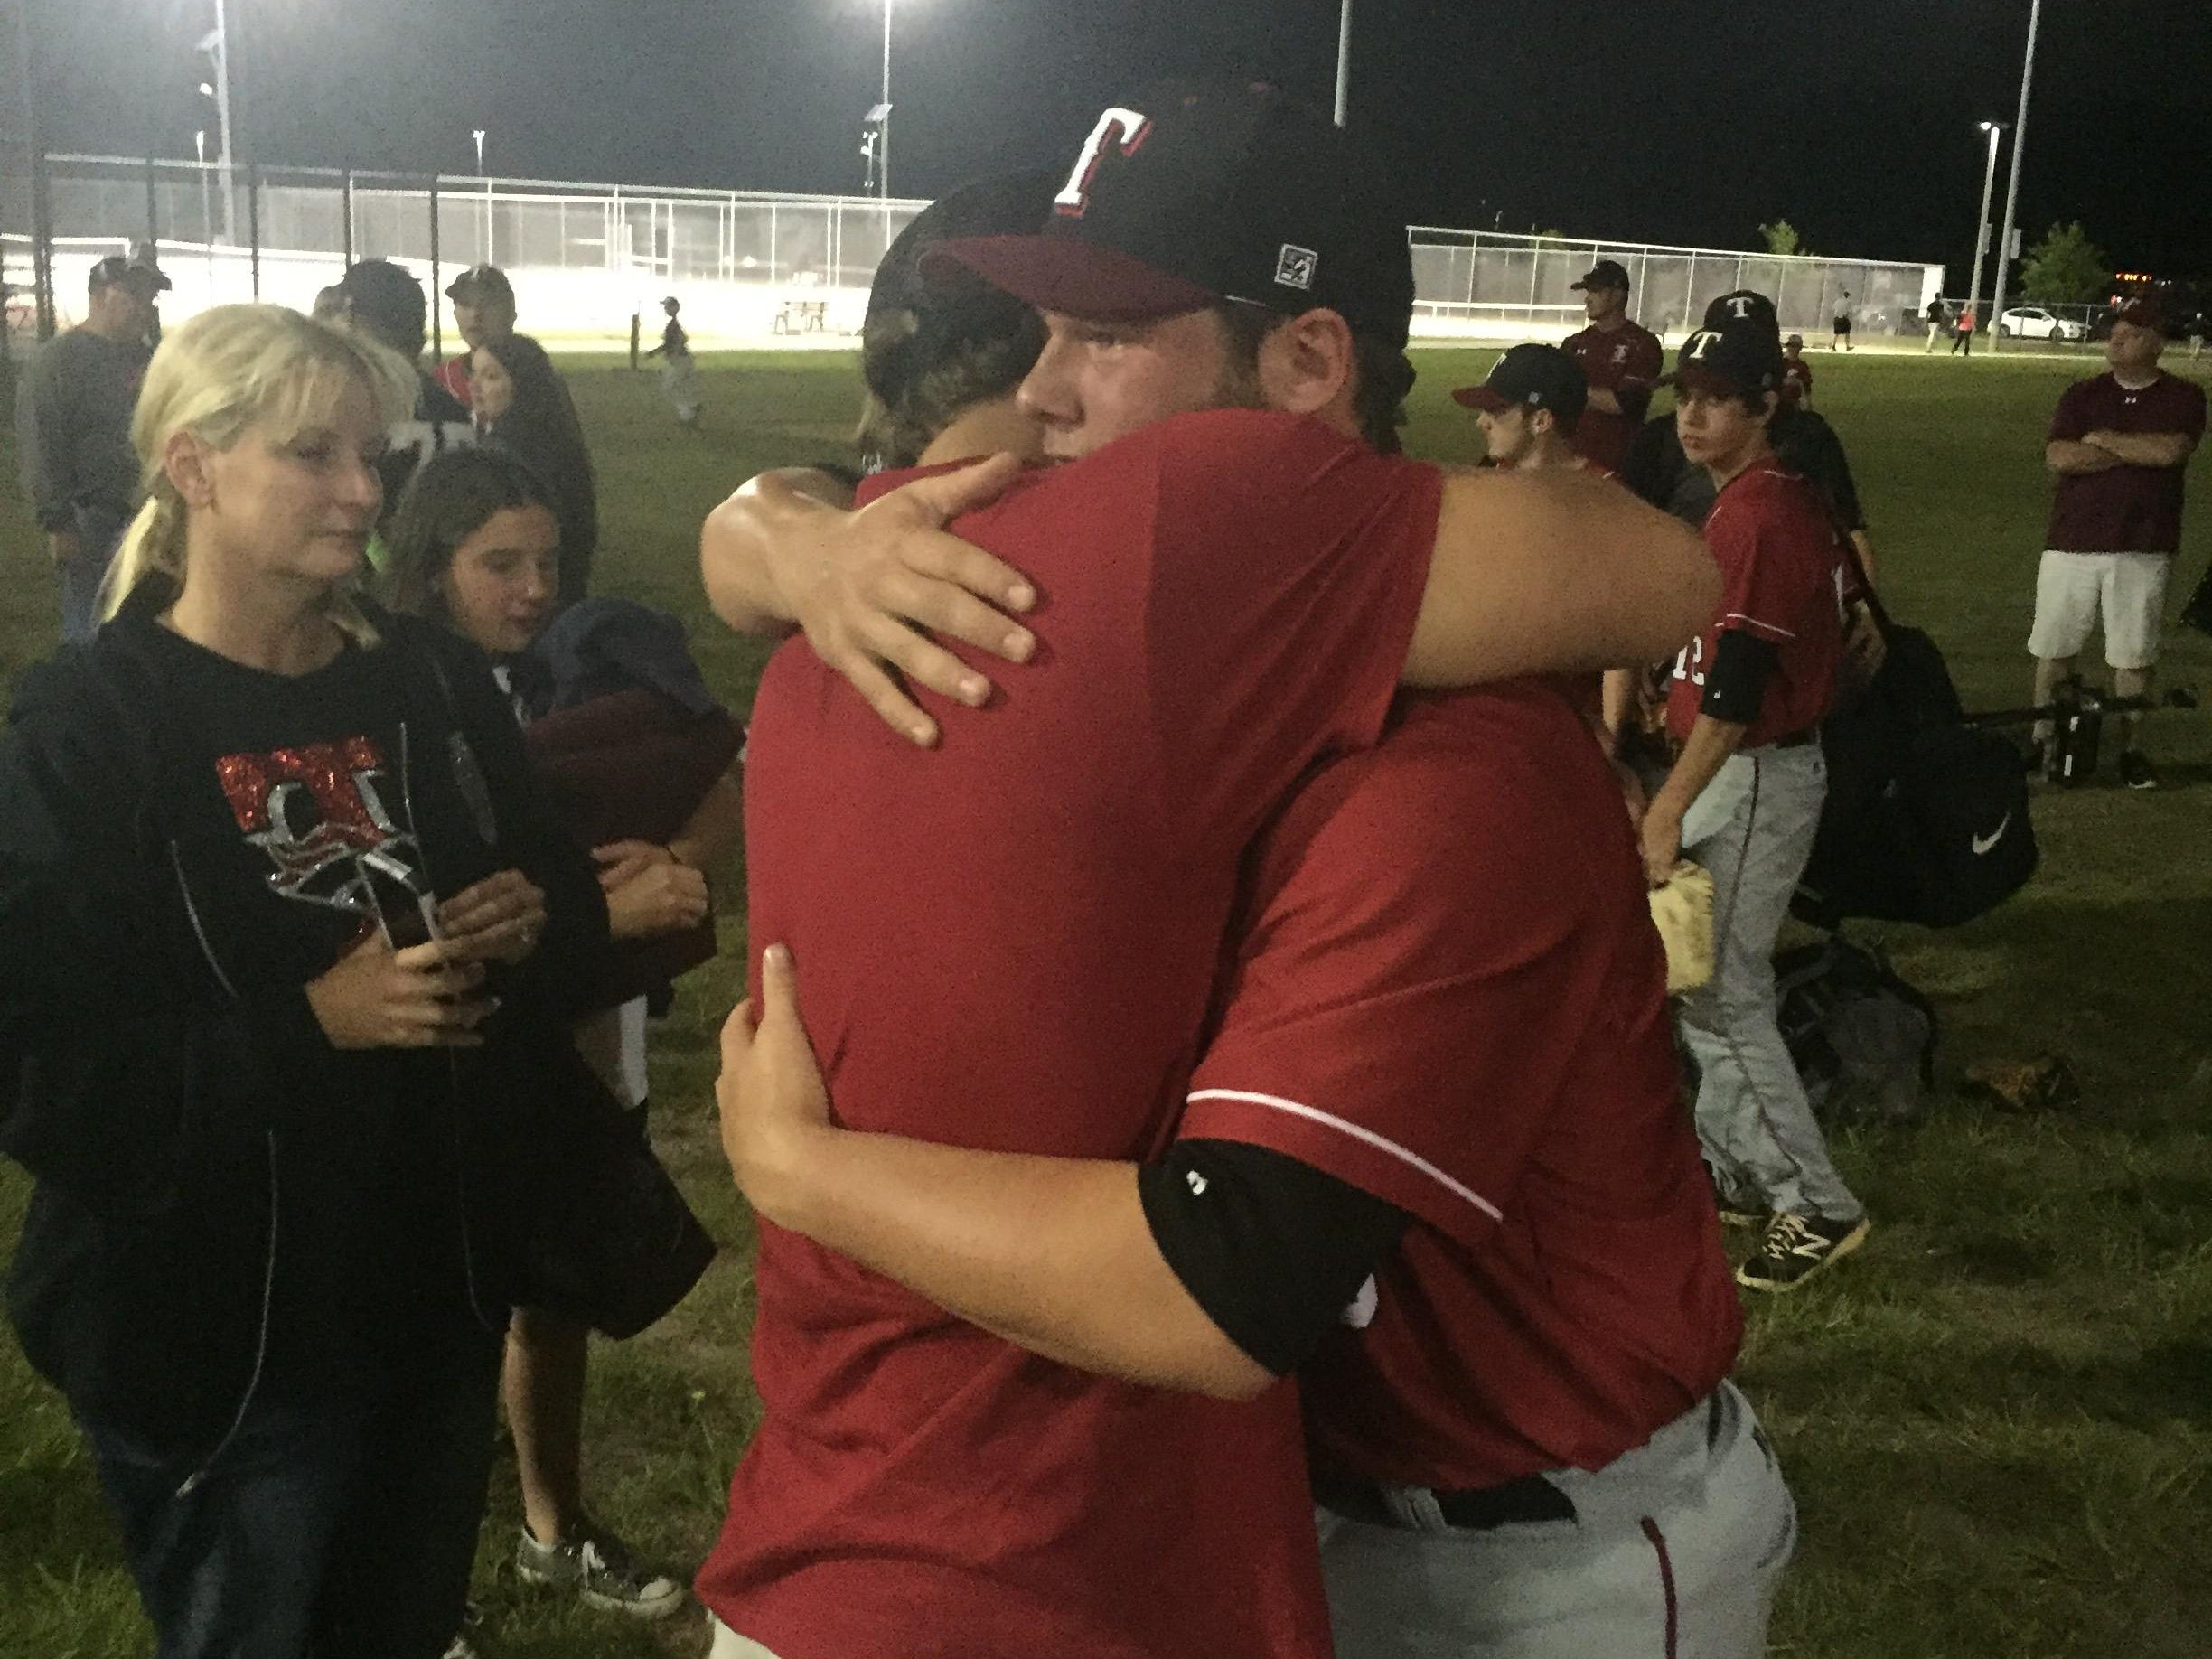 Tate catcher Cole Halfacre (right) embraces Everett Lockman, a Tate baseball alumi (C/O 2009) after a hard loss in the Region 1-7A Finals to St. John's Creekside.